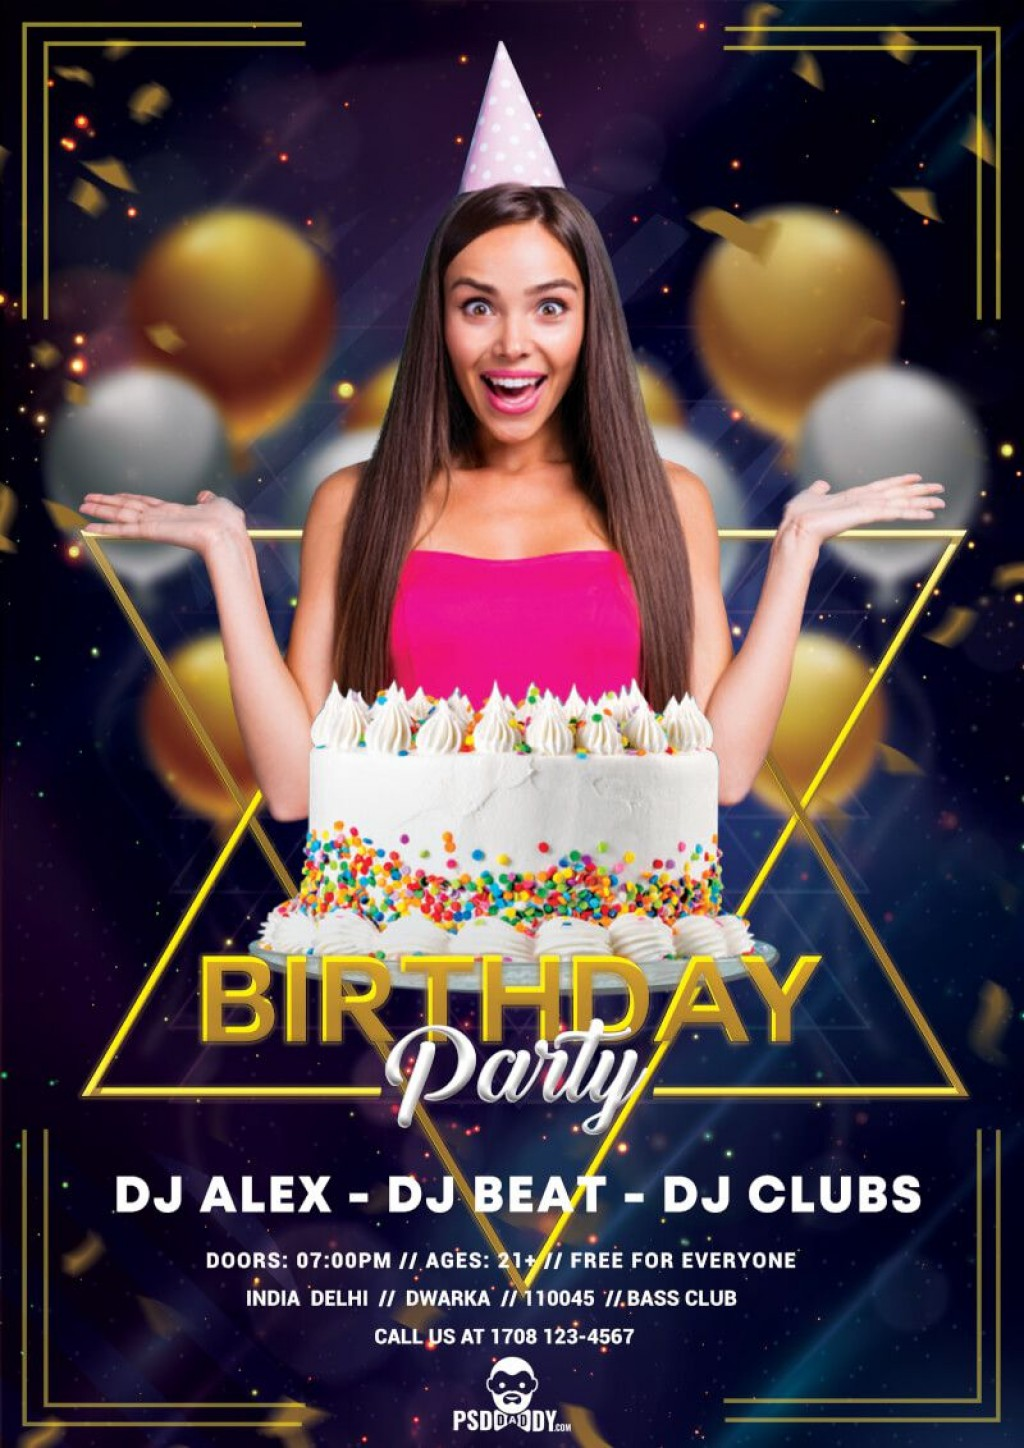 008 Astounding Birthday Flyer Template Psd Free Download High Resolution Large